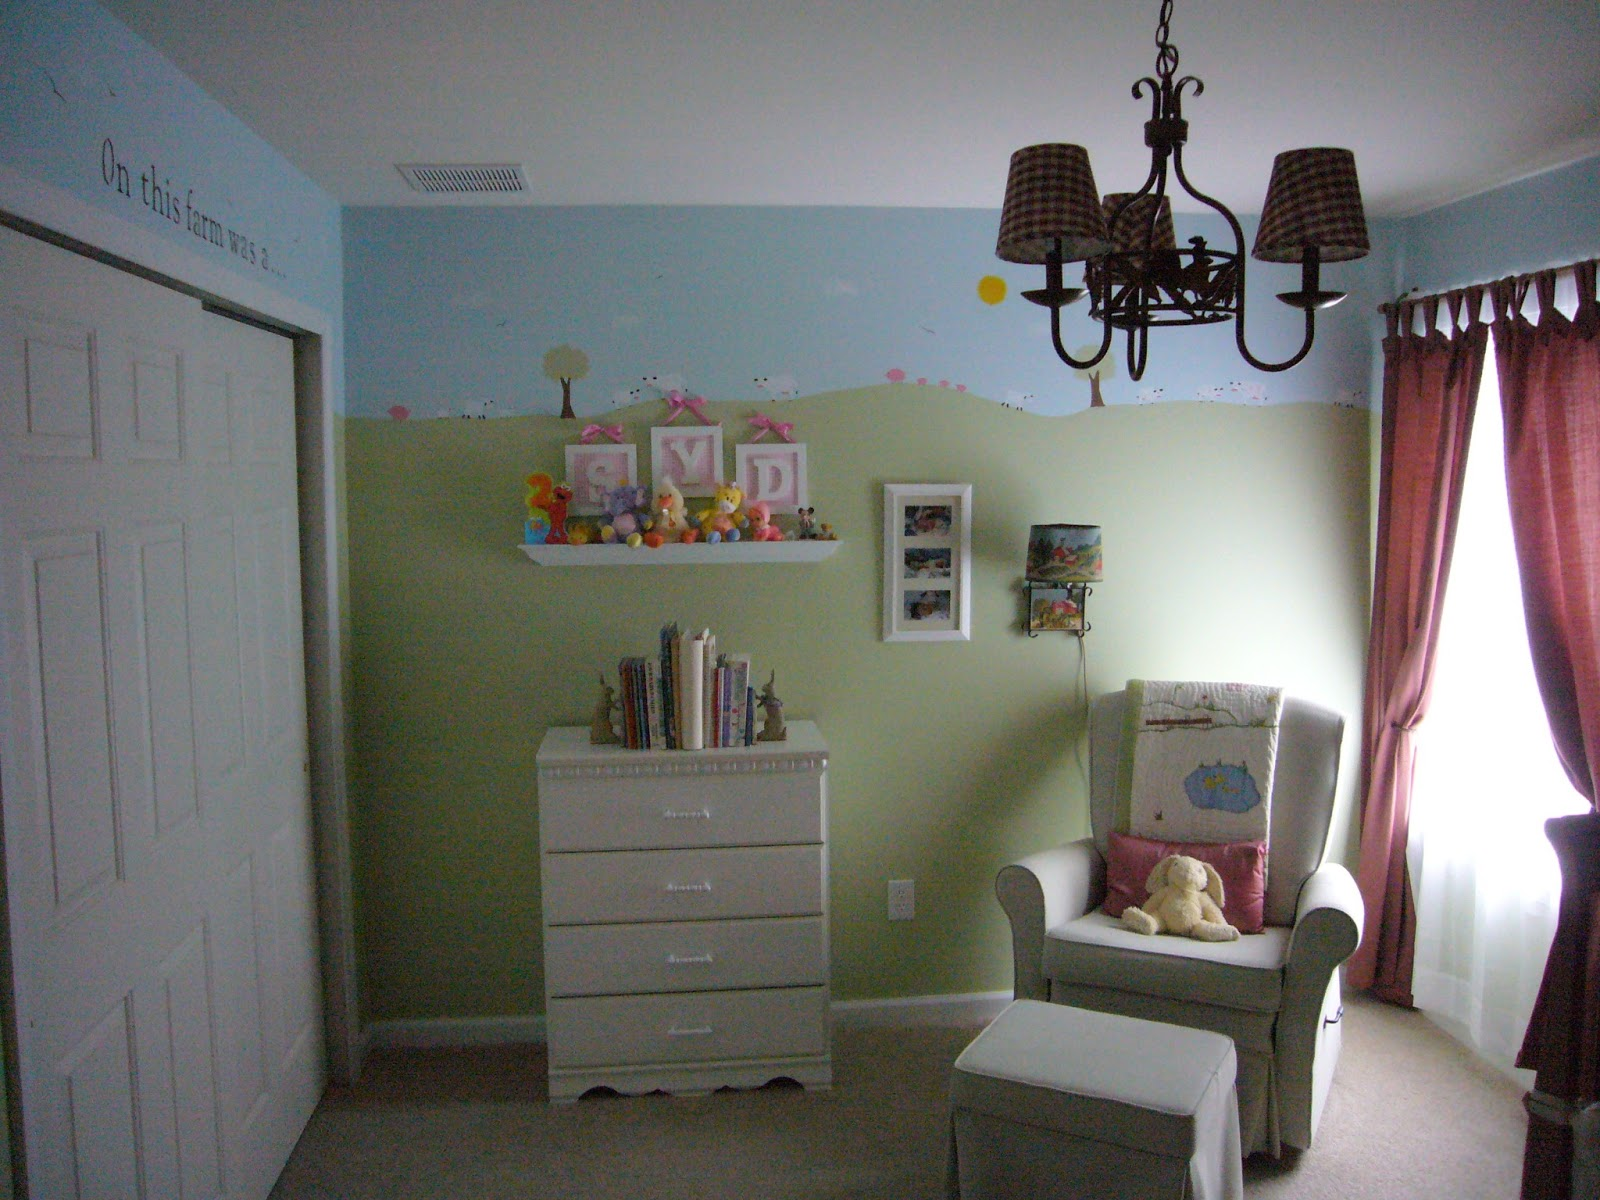 Recalling My Kids Farm Theme Nursery